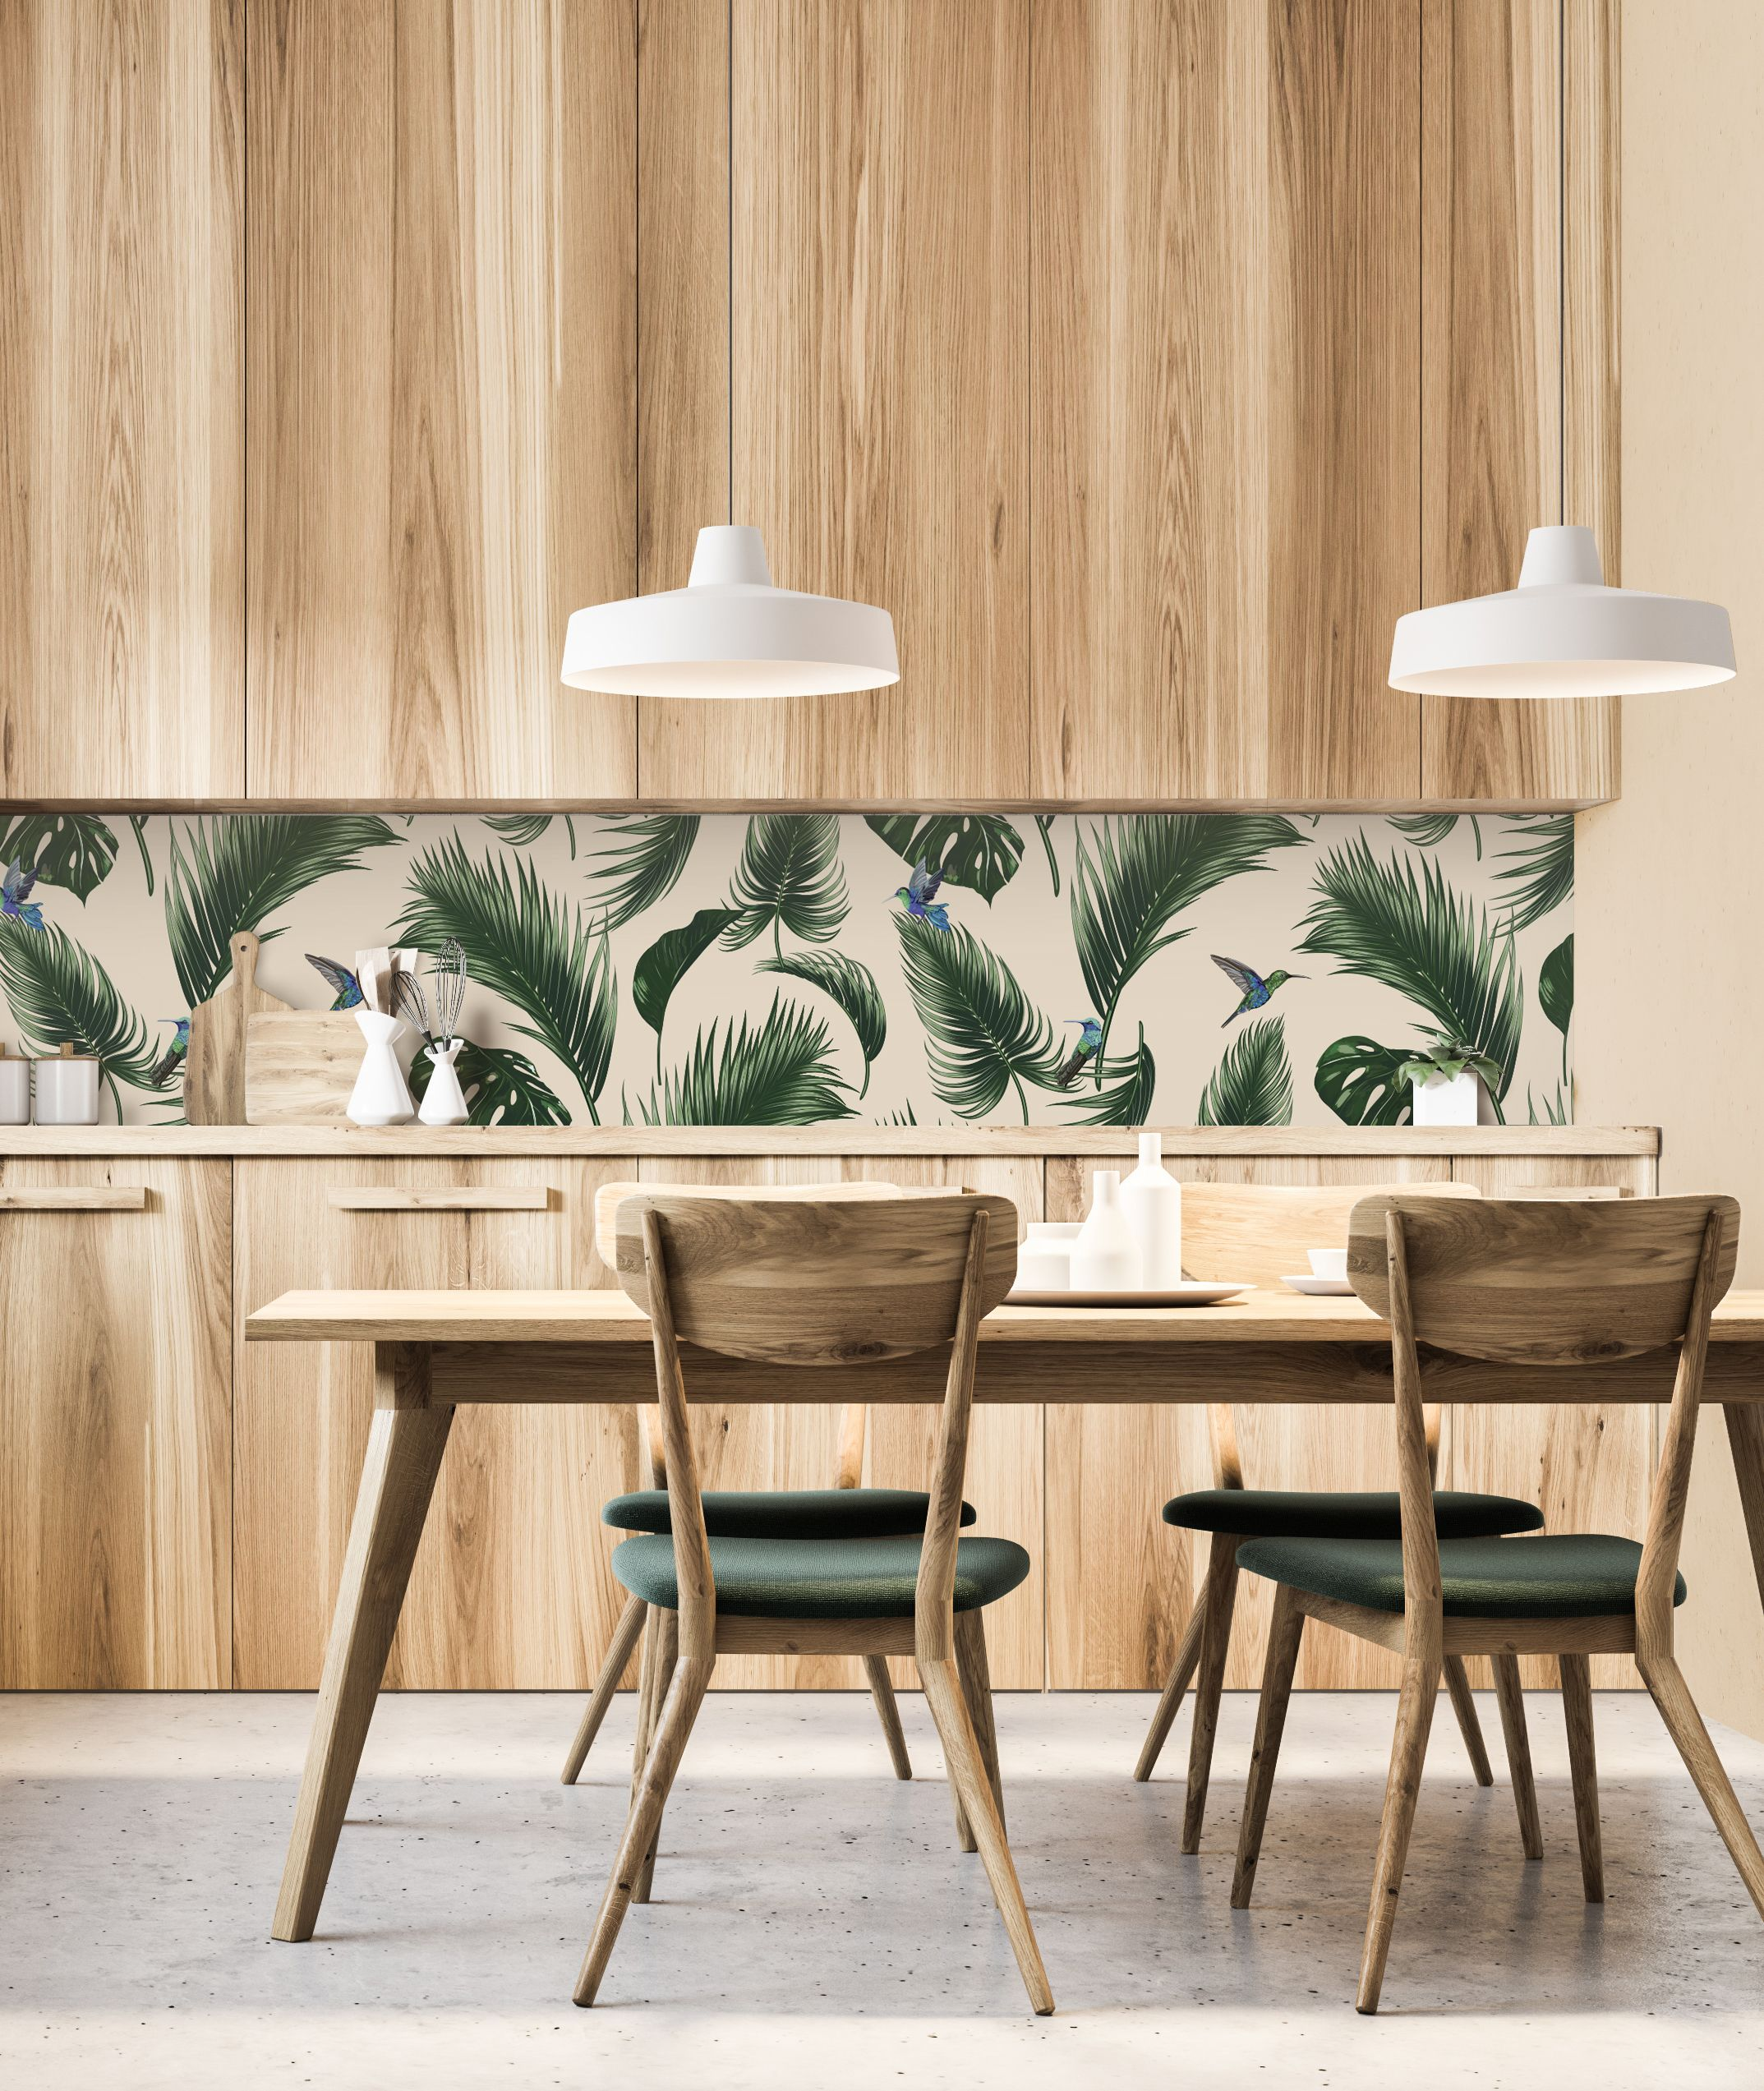 Themed Dining Room. Vertical Wood